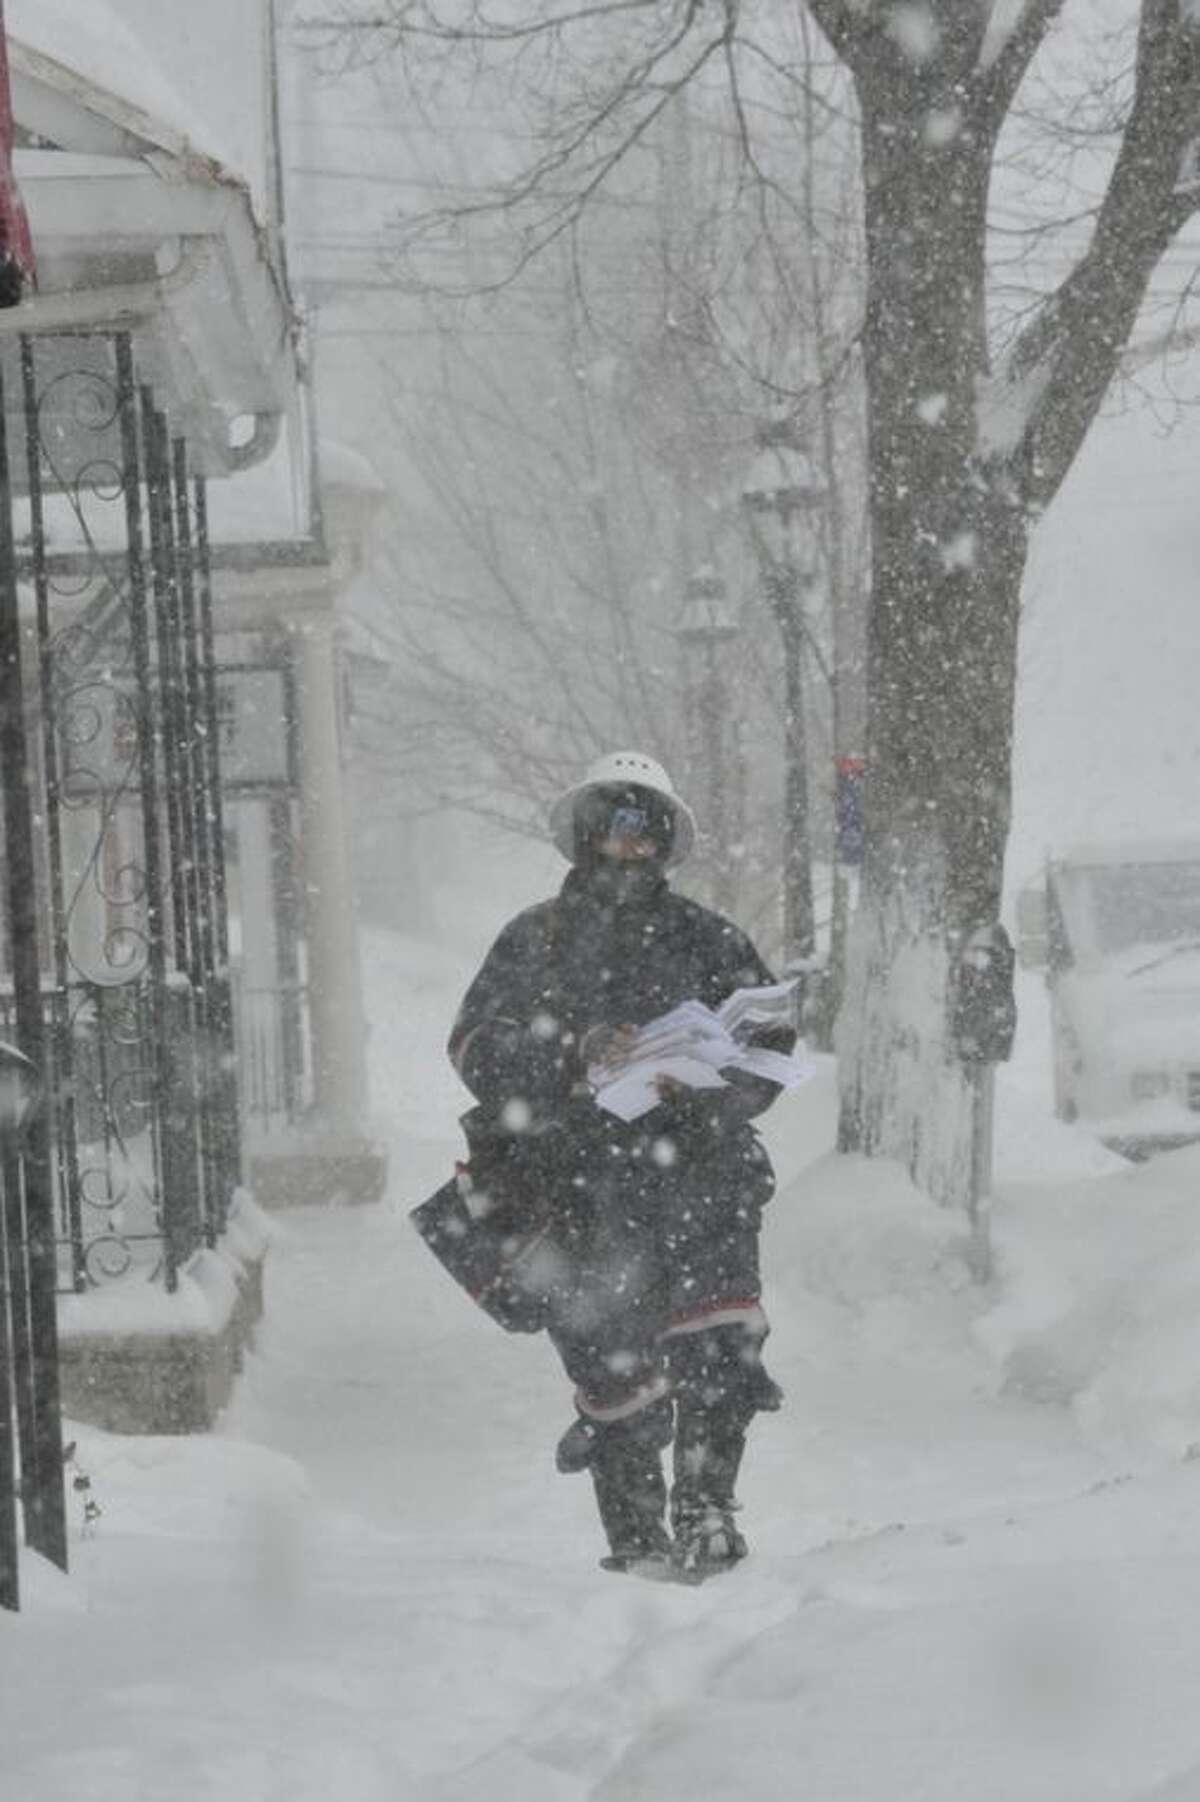 Mailman Simeon Reed makes his mail delivery rounds through deep snow and blizzard conditions on Broad Street in Bethlehem, Pa. on Thursday, Feb. 13, 2014. The storm spread heavy snow and sleet along the Northeast corridor. (AP Photo/Chris Post)